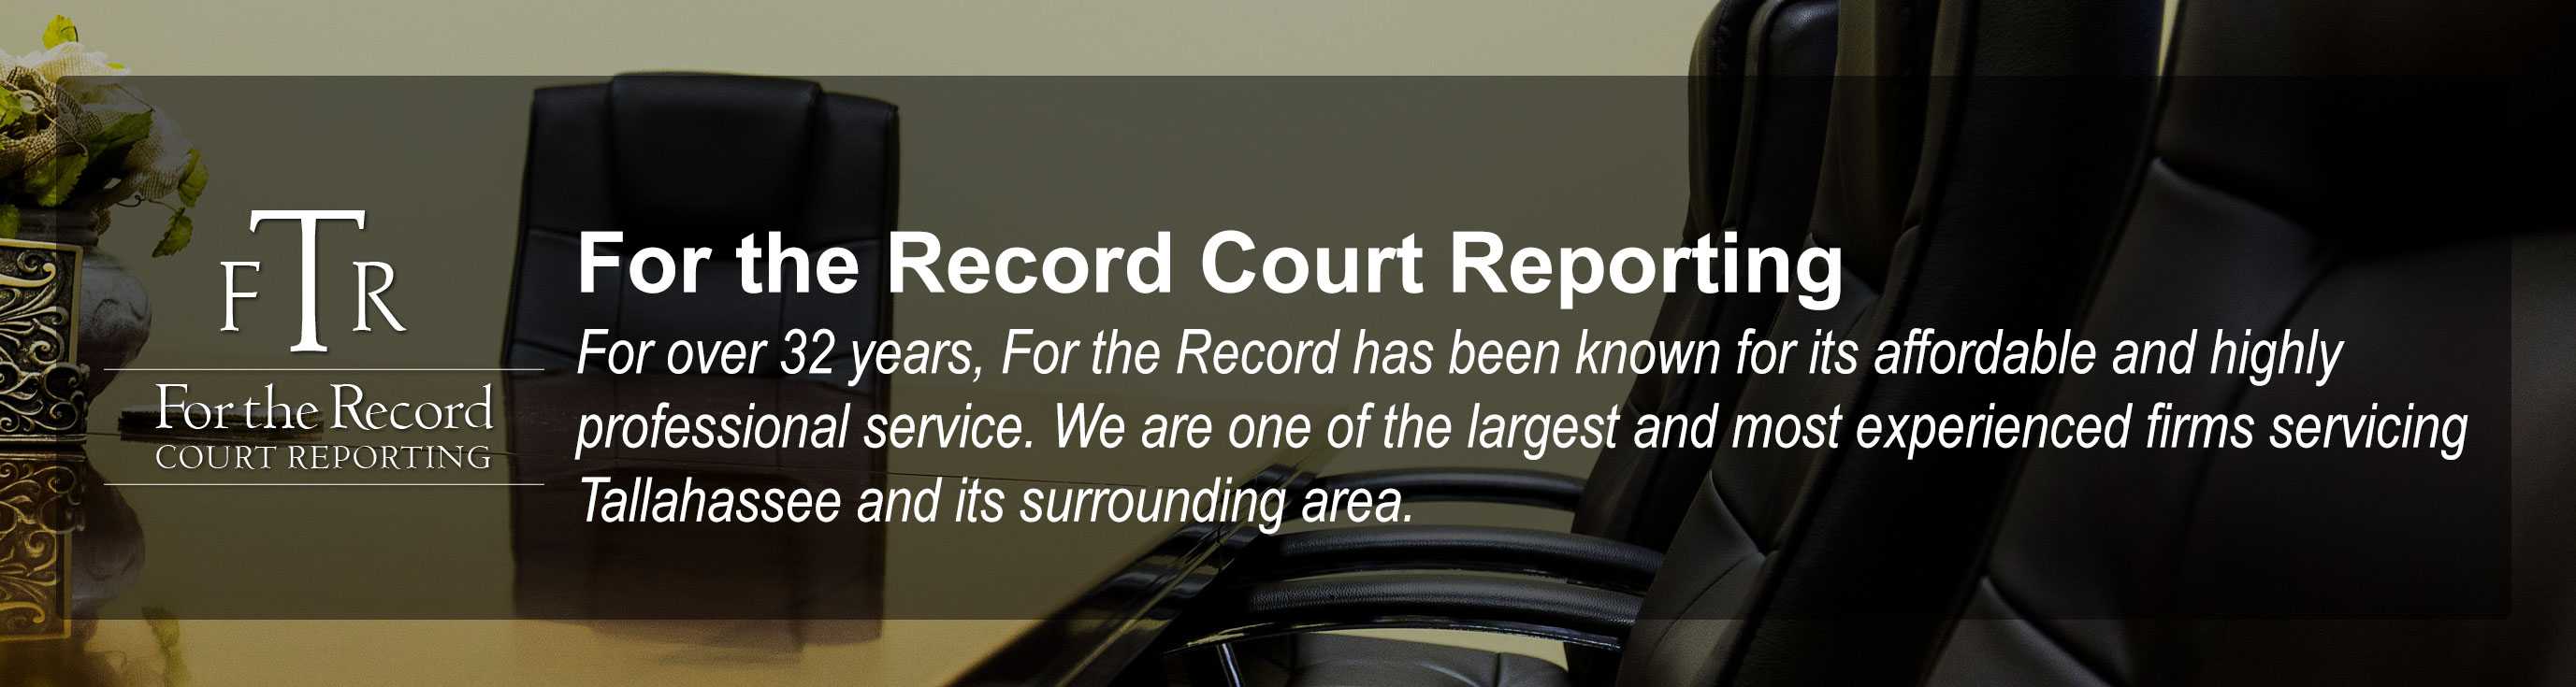 For the Record Court Reporting, Inc. in Tallahassee, Florida